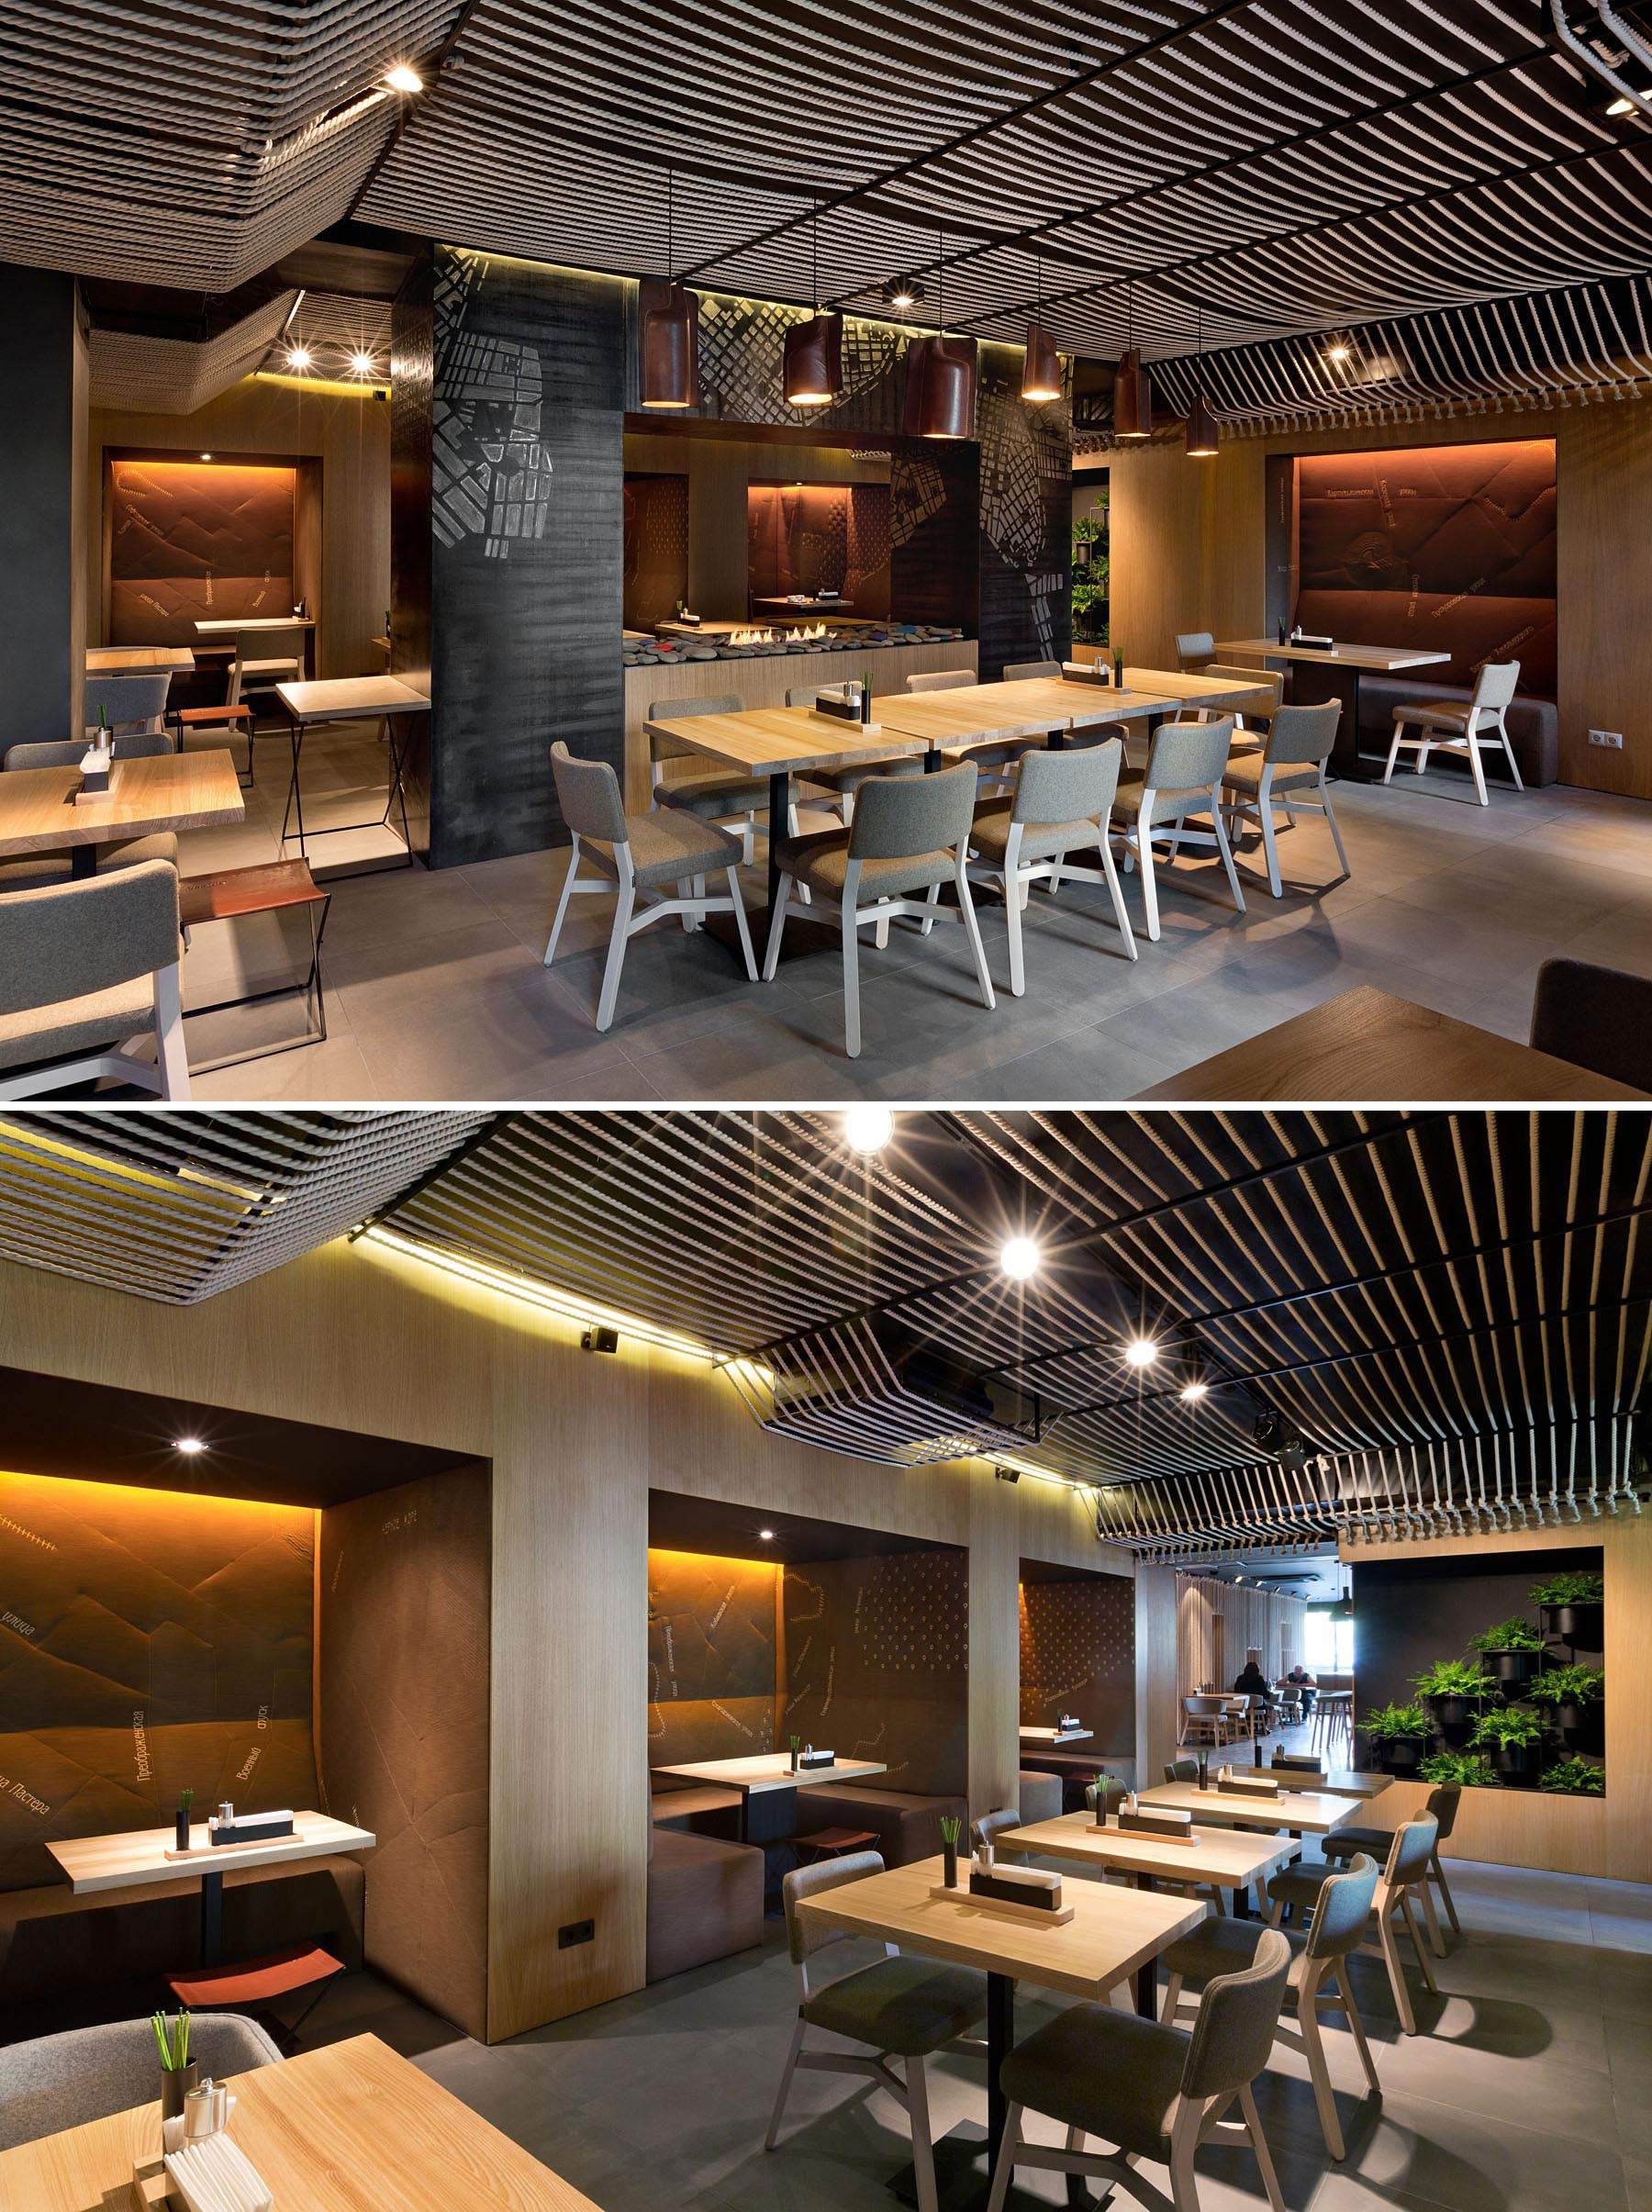 A modern restaurant with a rope ceiling installation.